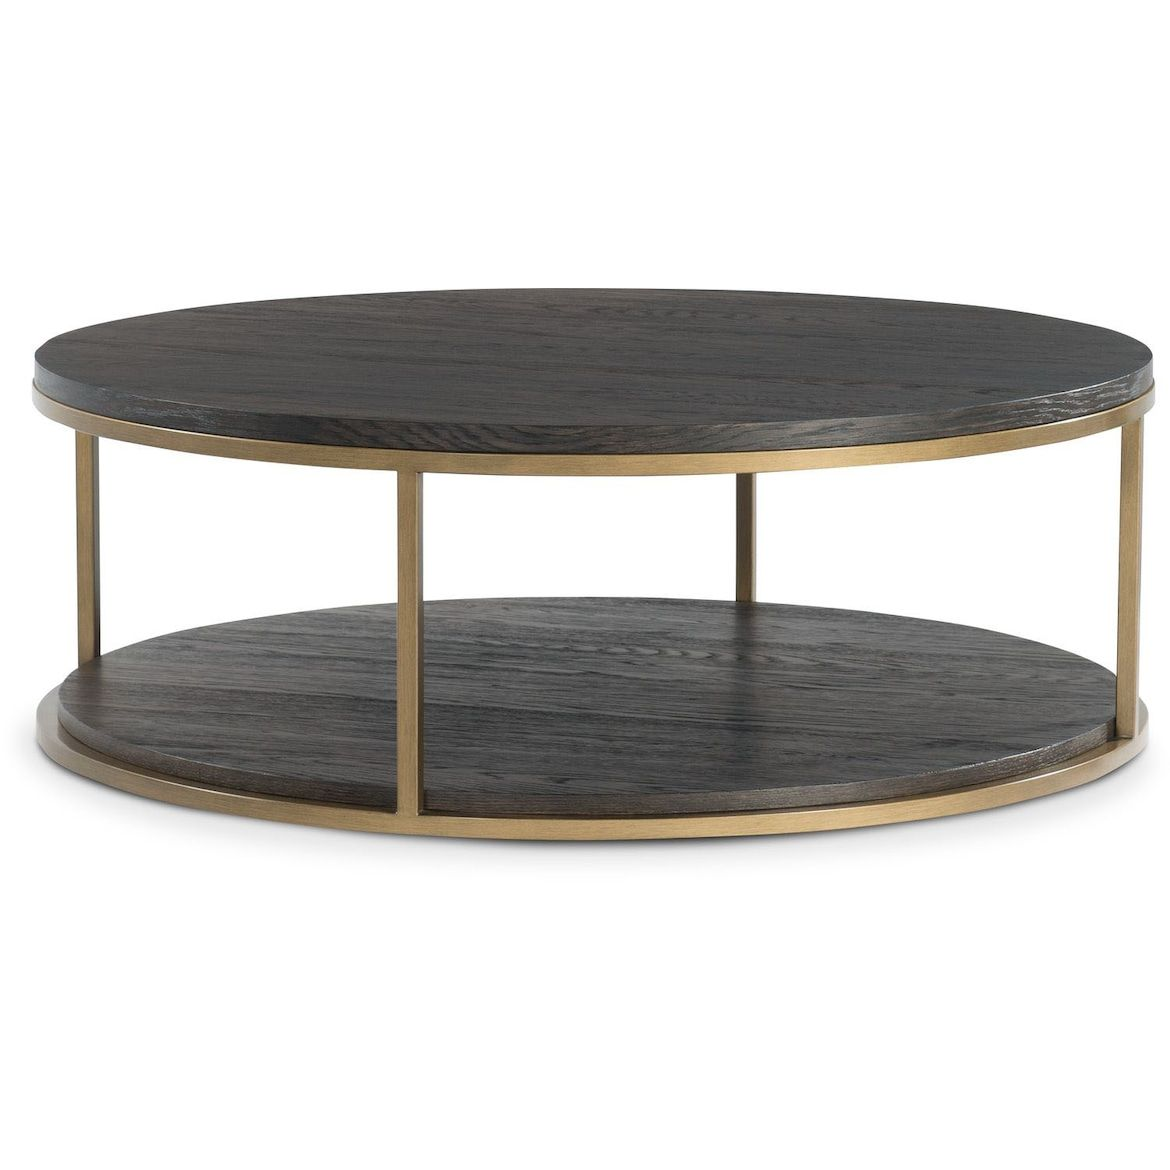 Malibu Round Metal Coffee Table Umber Value City Furniture And Mattresses Coffee Table Rug Coffee Table Round Metal Coffee Table [ 1170 x 1170 Pixel ]